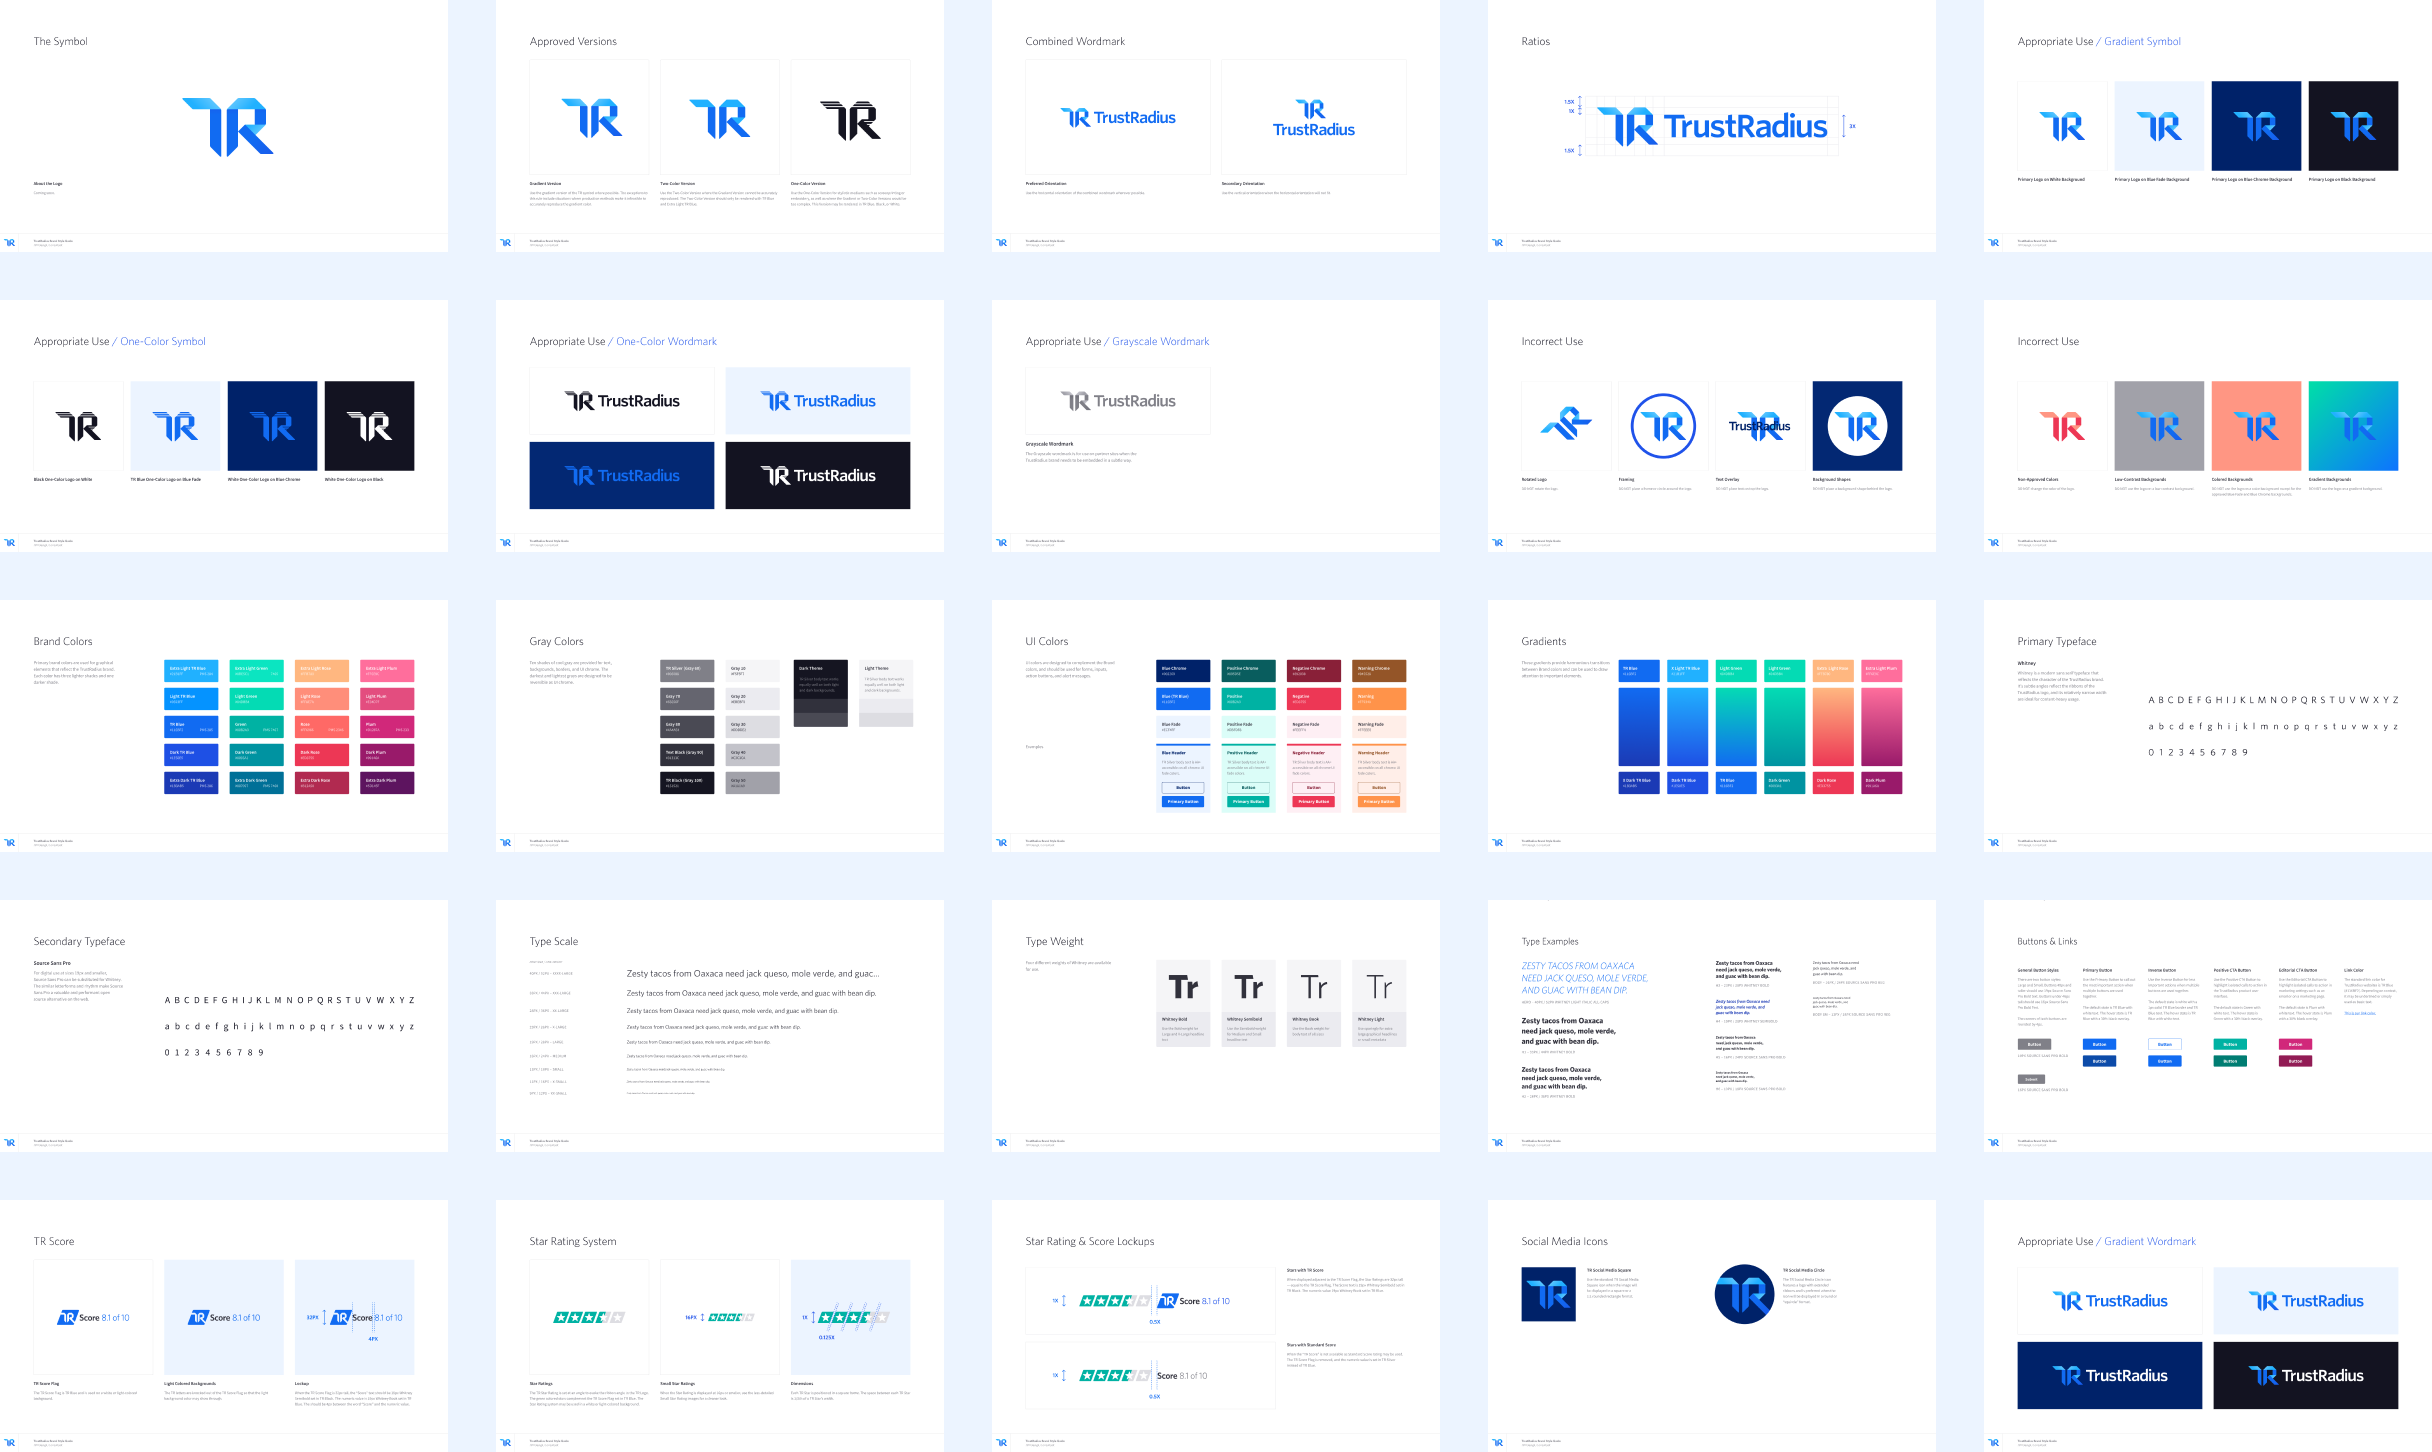 Thumbnails from the TrustRadius Brand Guide